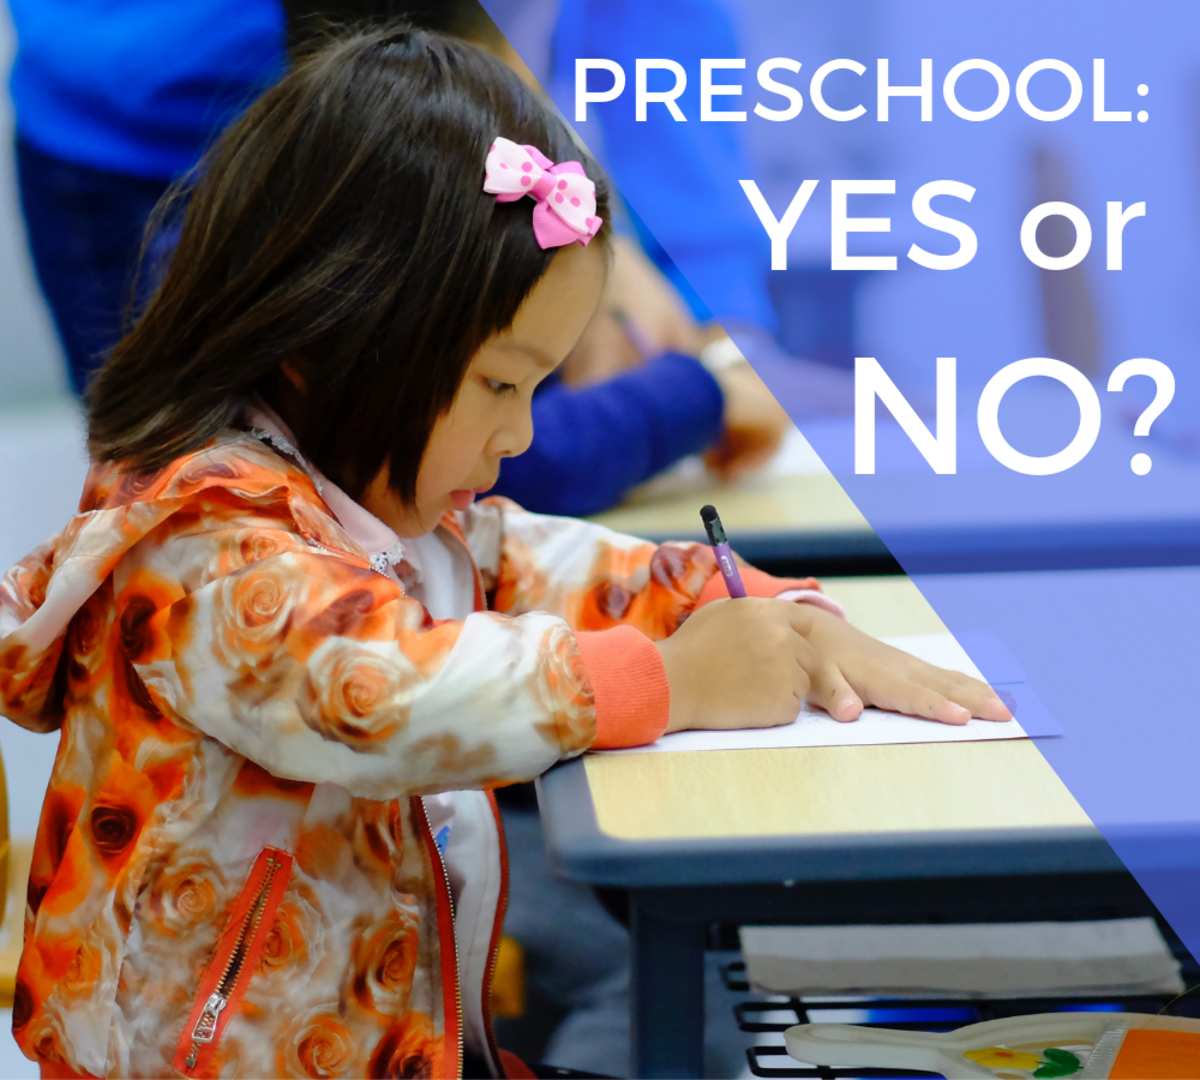 early-childhood-education-5-reasons-for-not-sending-your-youngster-to-preschool